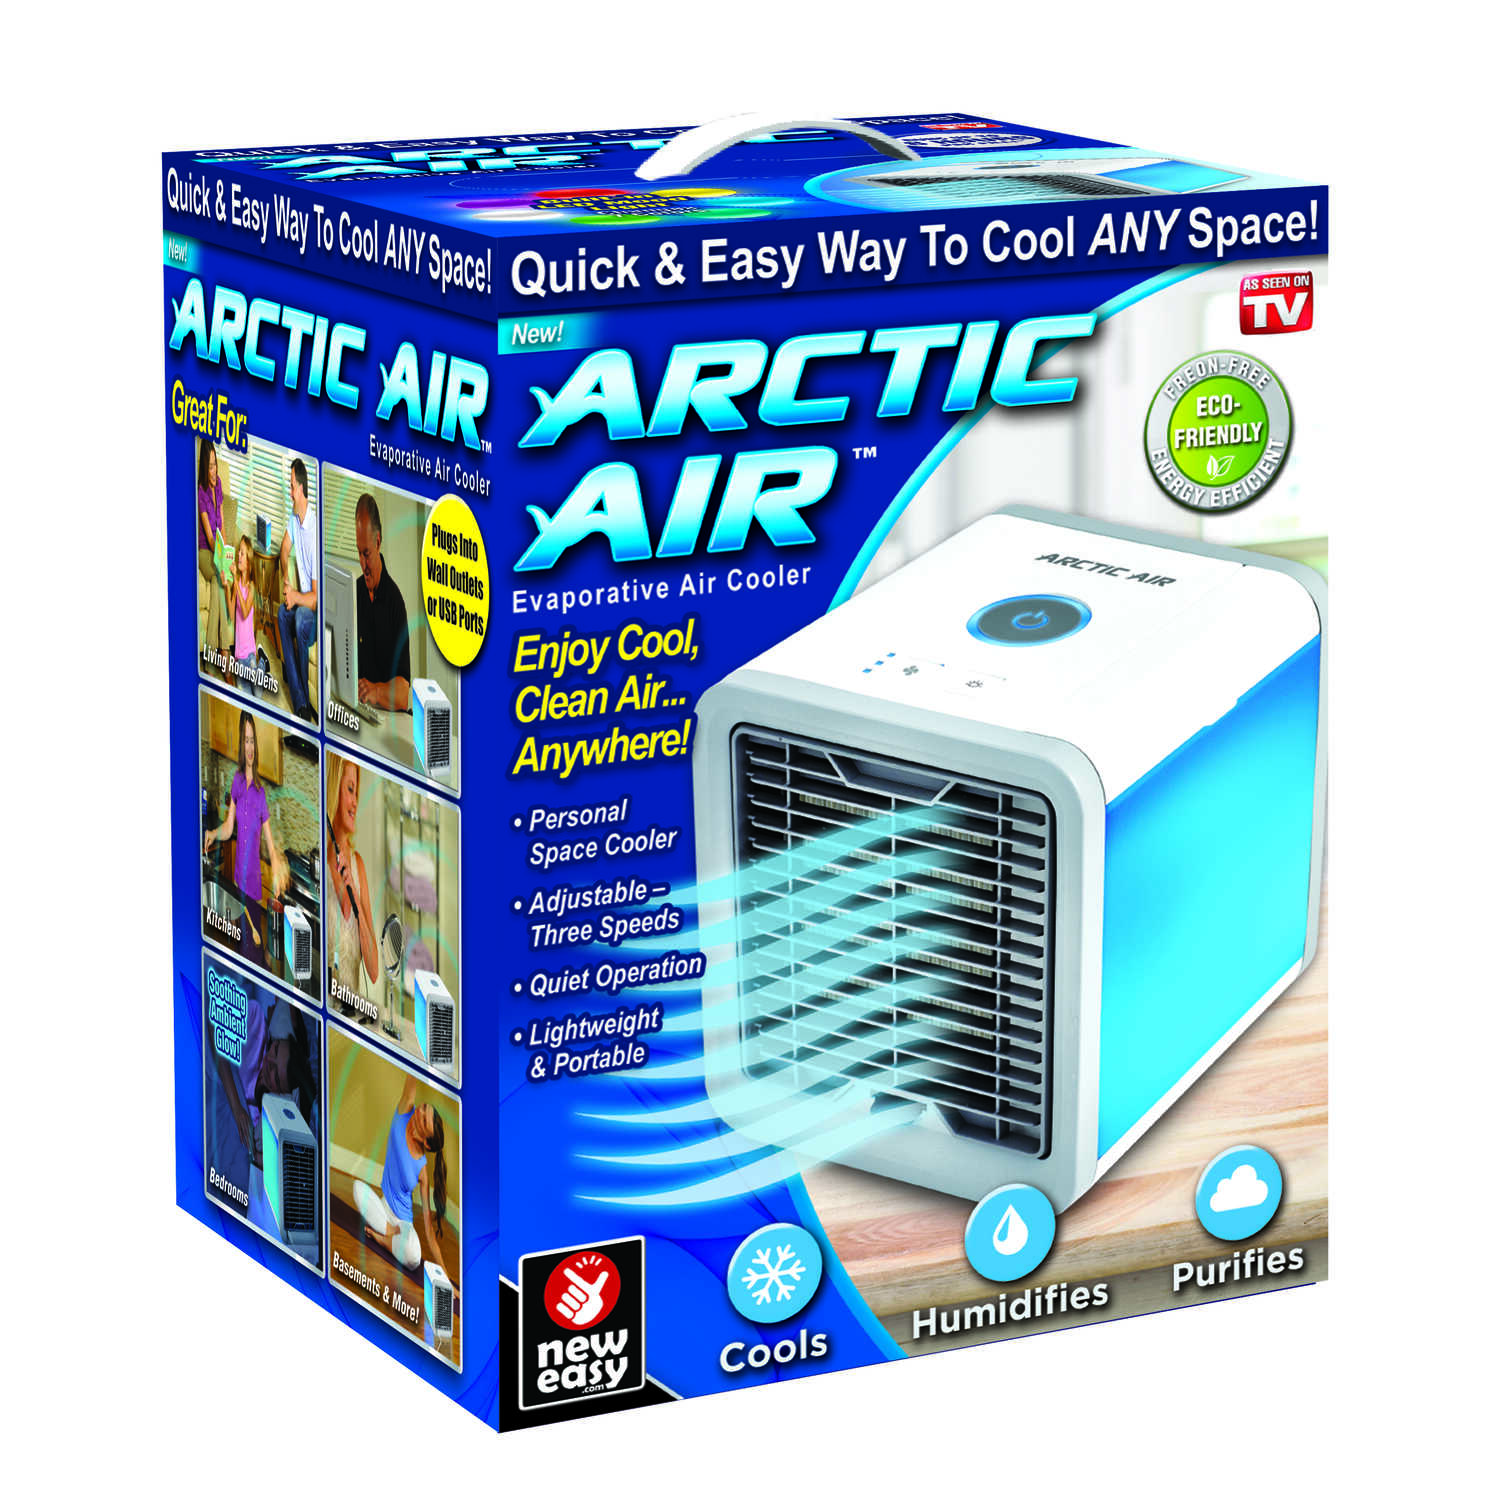 ARCTIC AIR As Seen On TV 45 sq. ft. Portable Air Conditioner - Ace ...